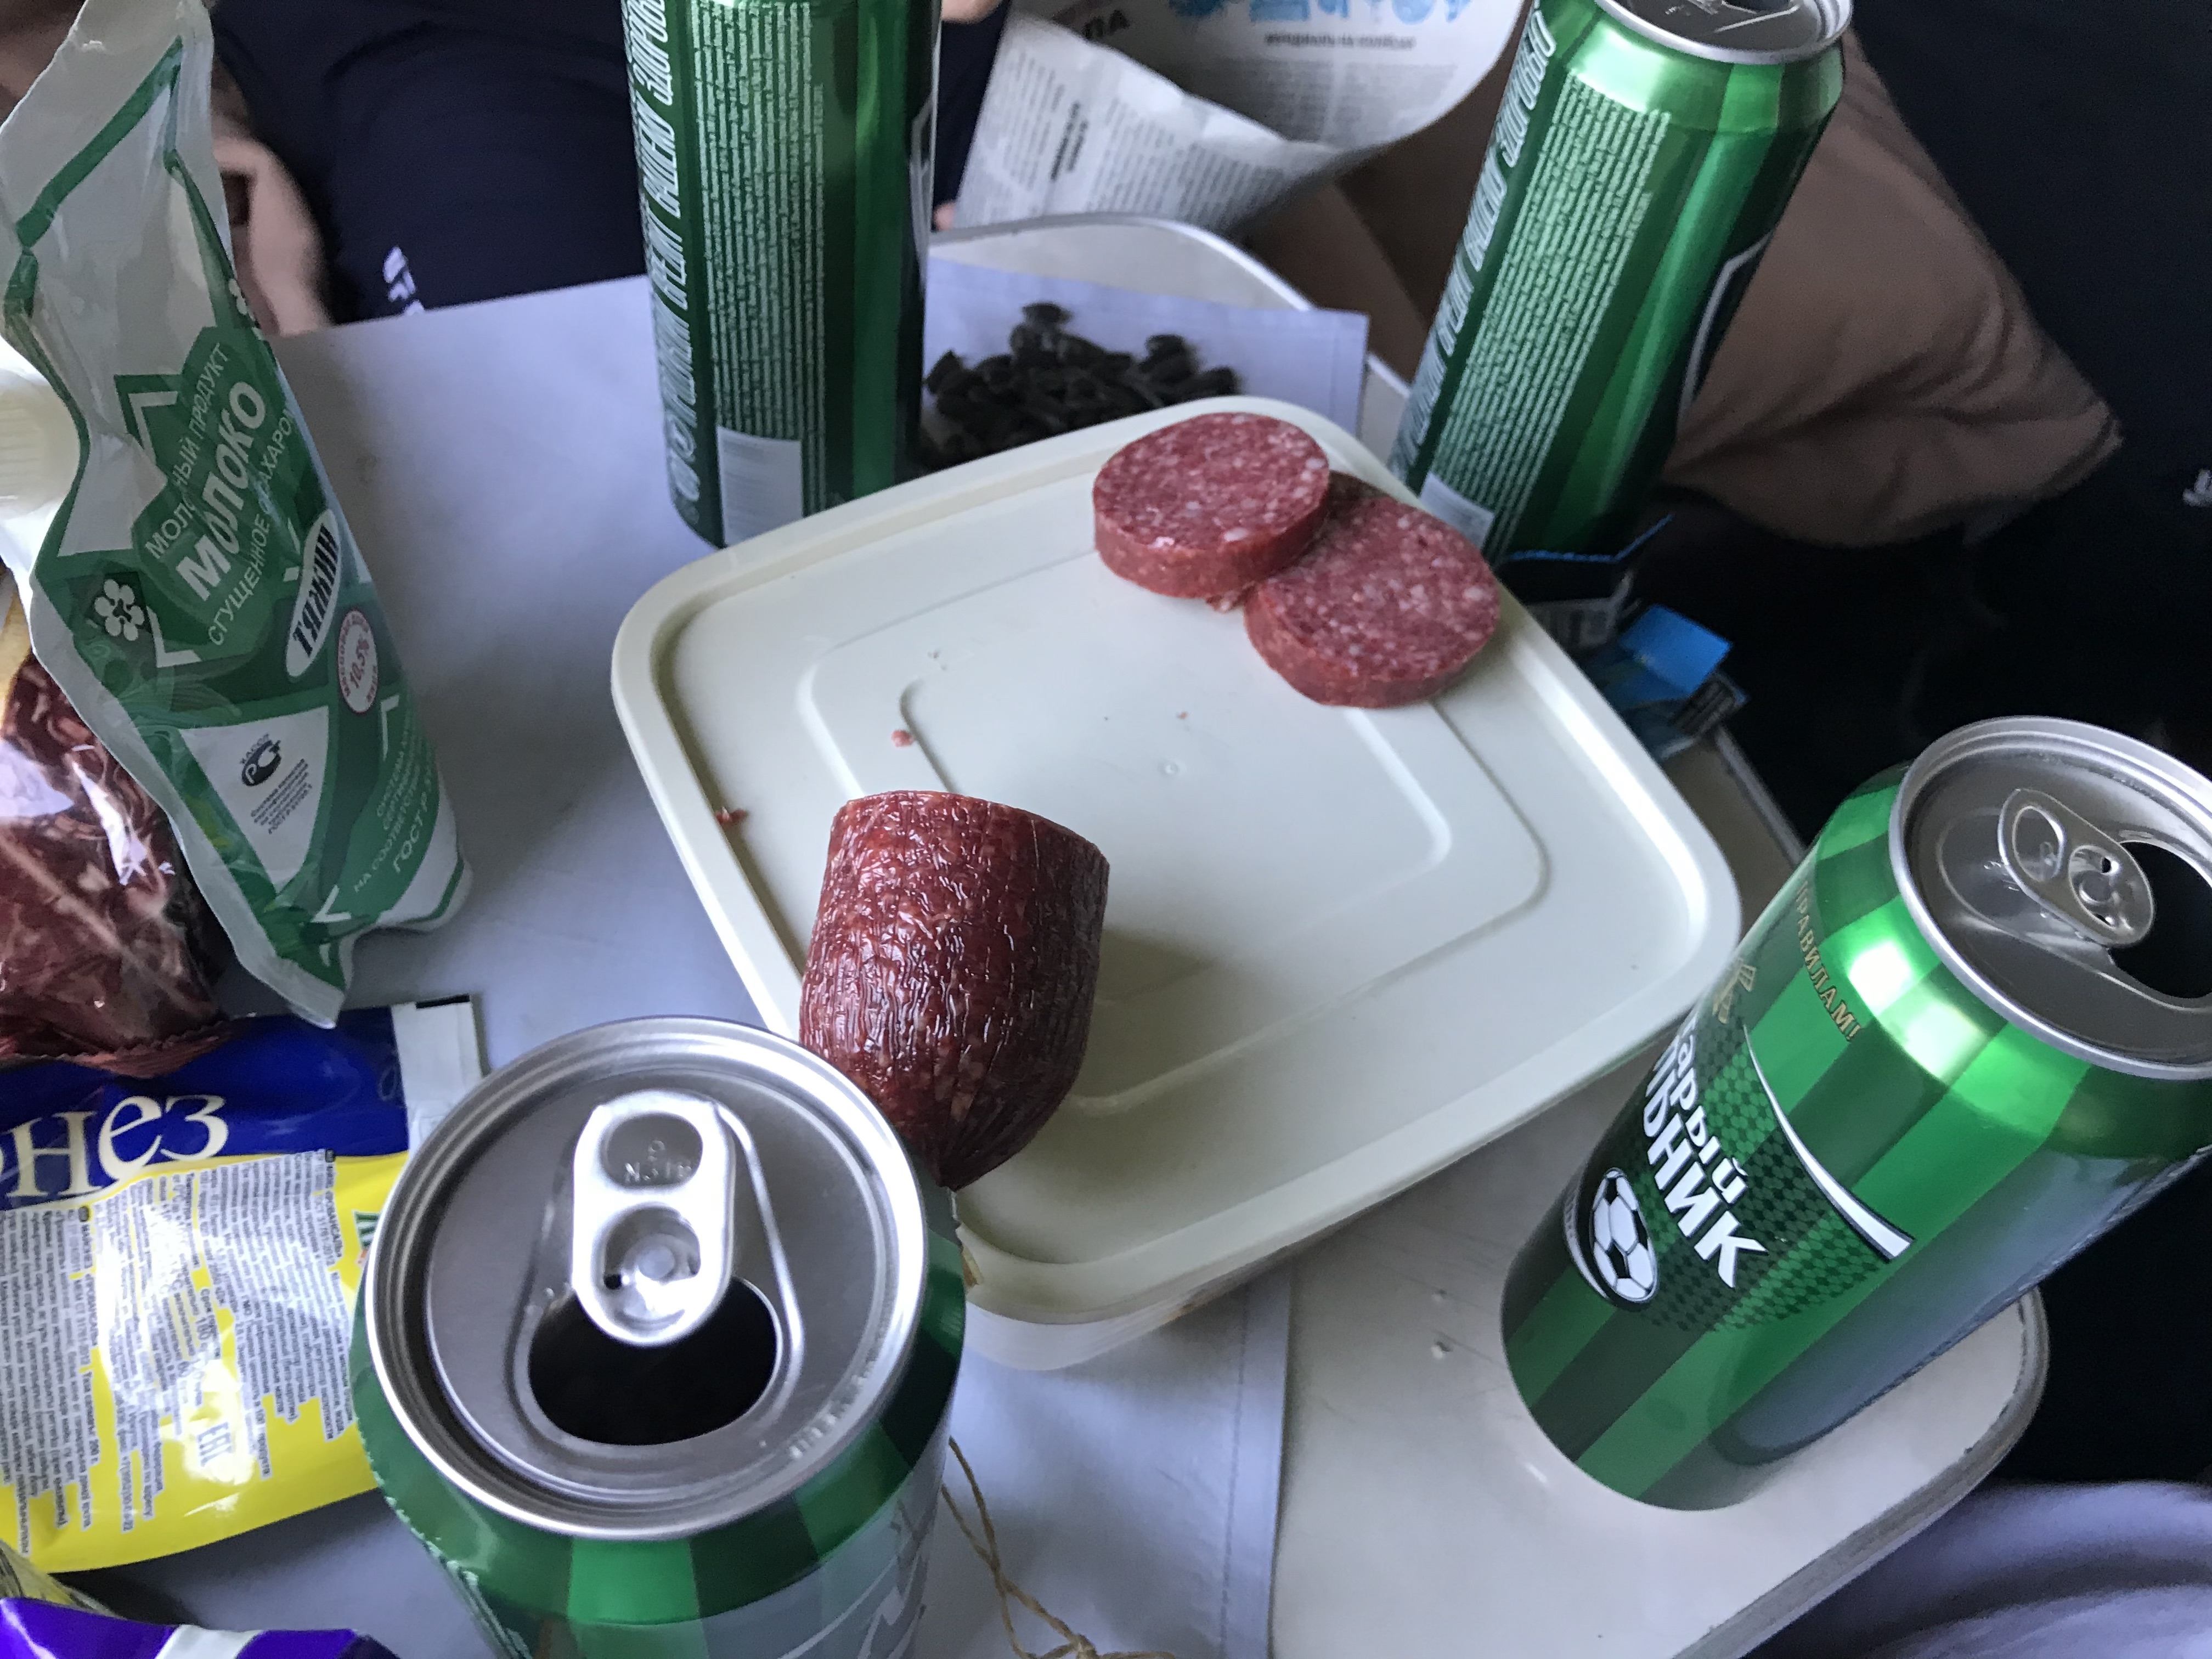 Celebrating Independence Day with beer abord the Trans-Siberian Railway.